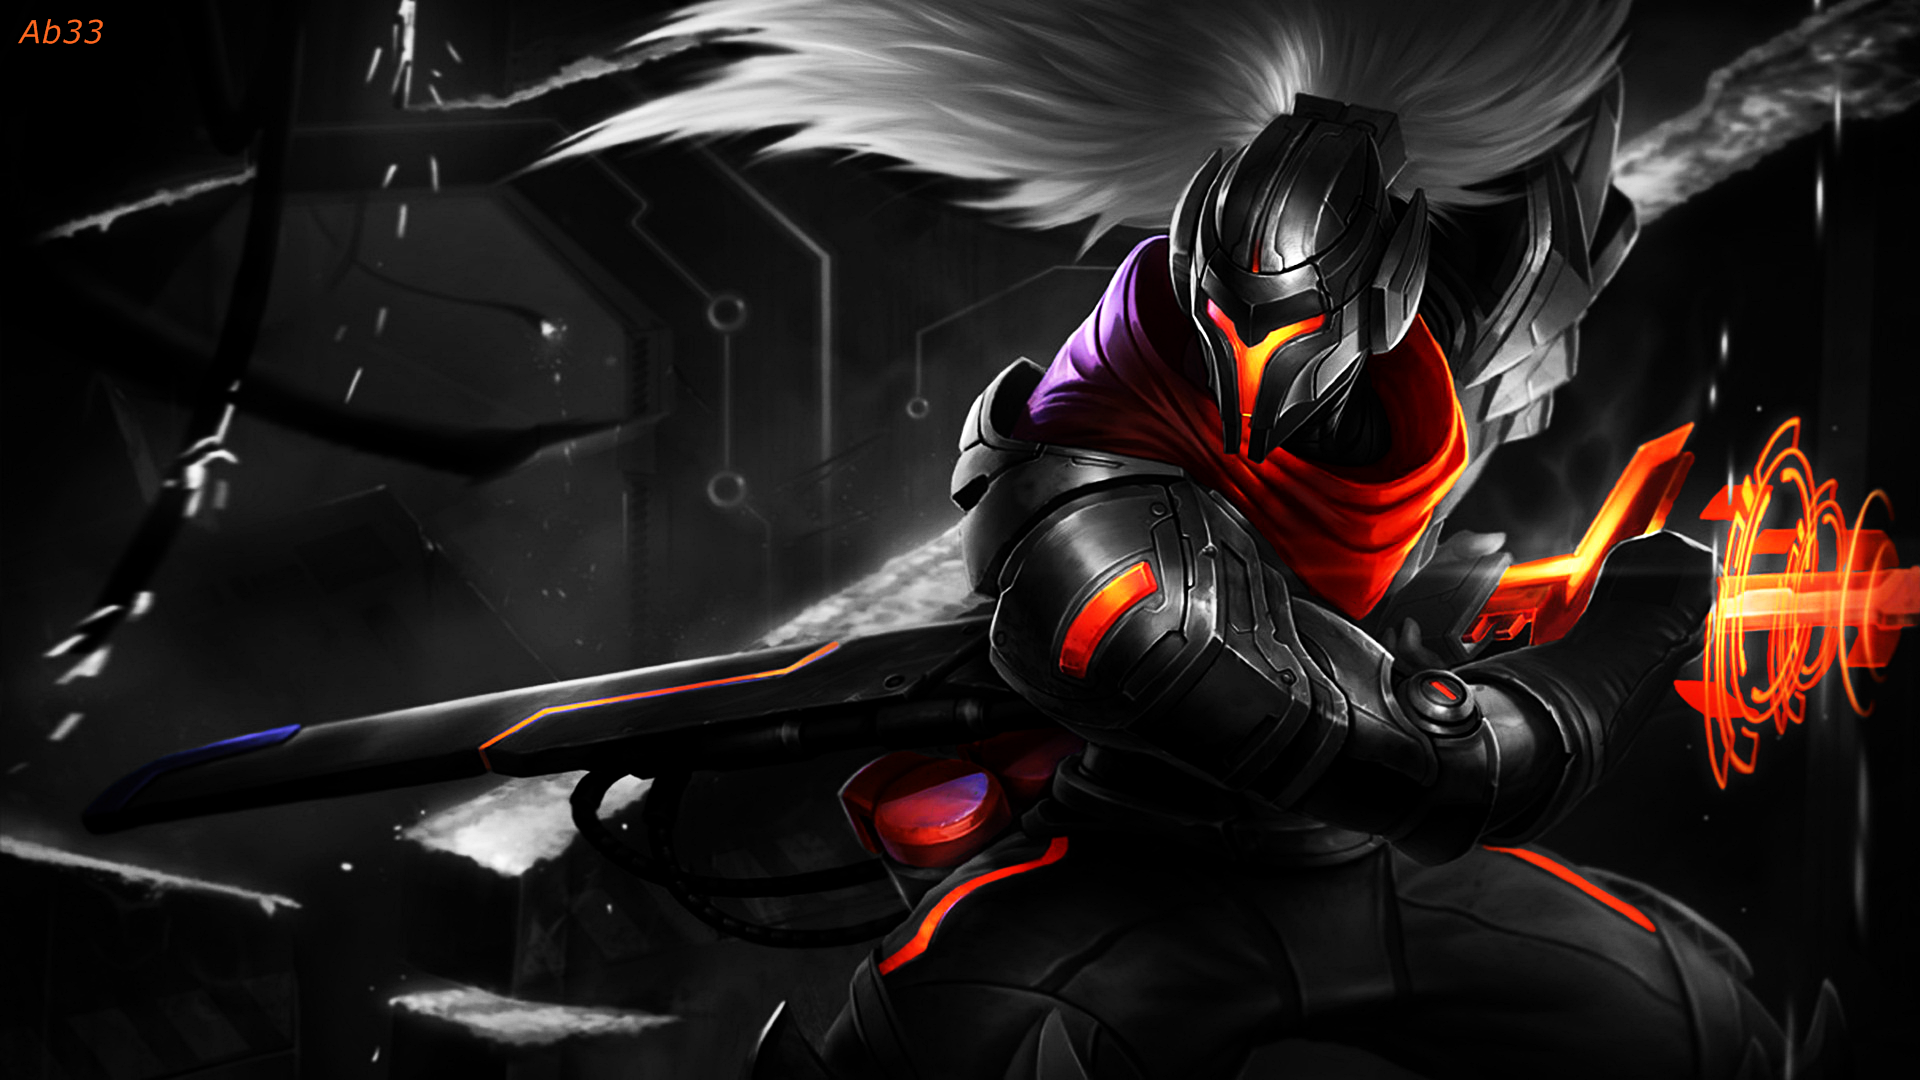 Creation Hd Wallpaper 1920x1080 League of legends Project sword Yasuo 1920x1080